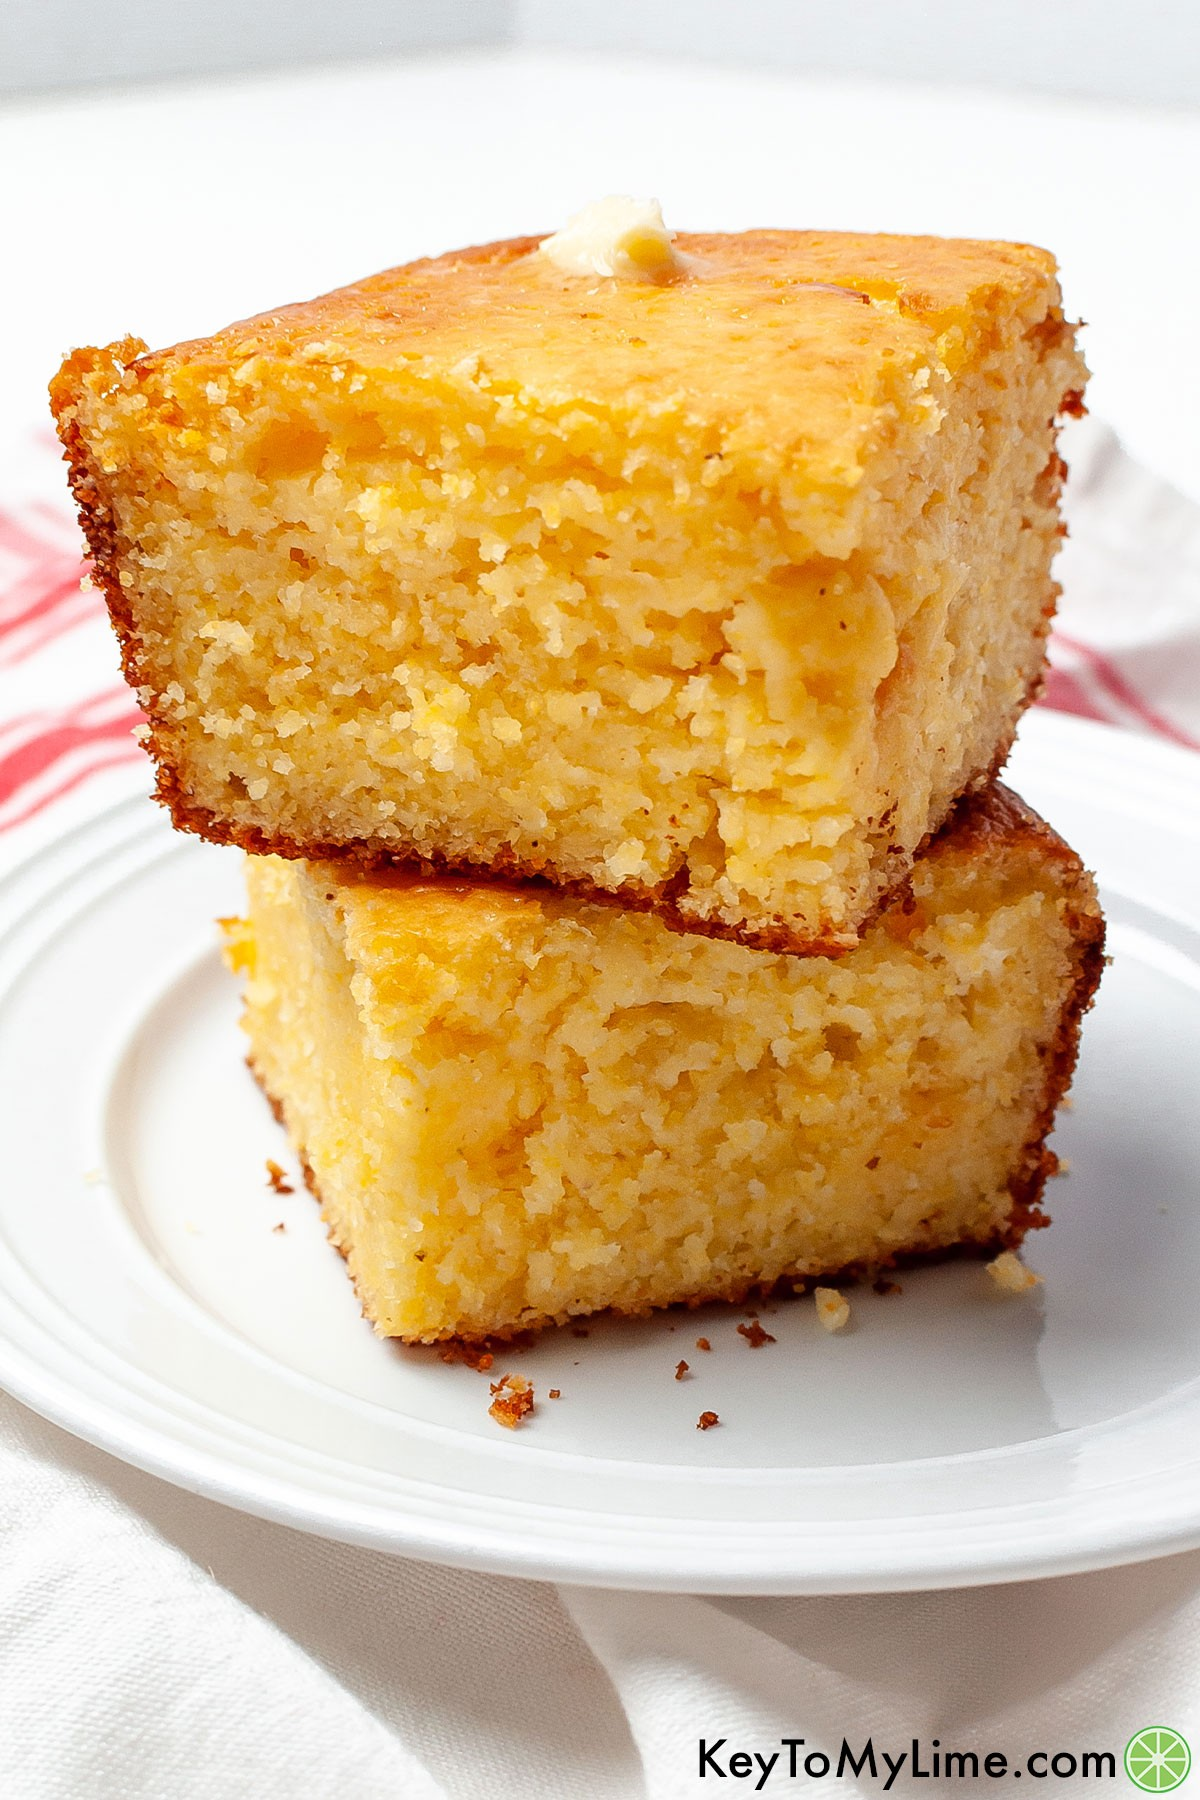 Two pieces of the best Jiffy cornbread stacked on a plate.